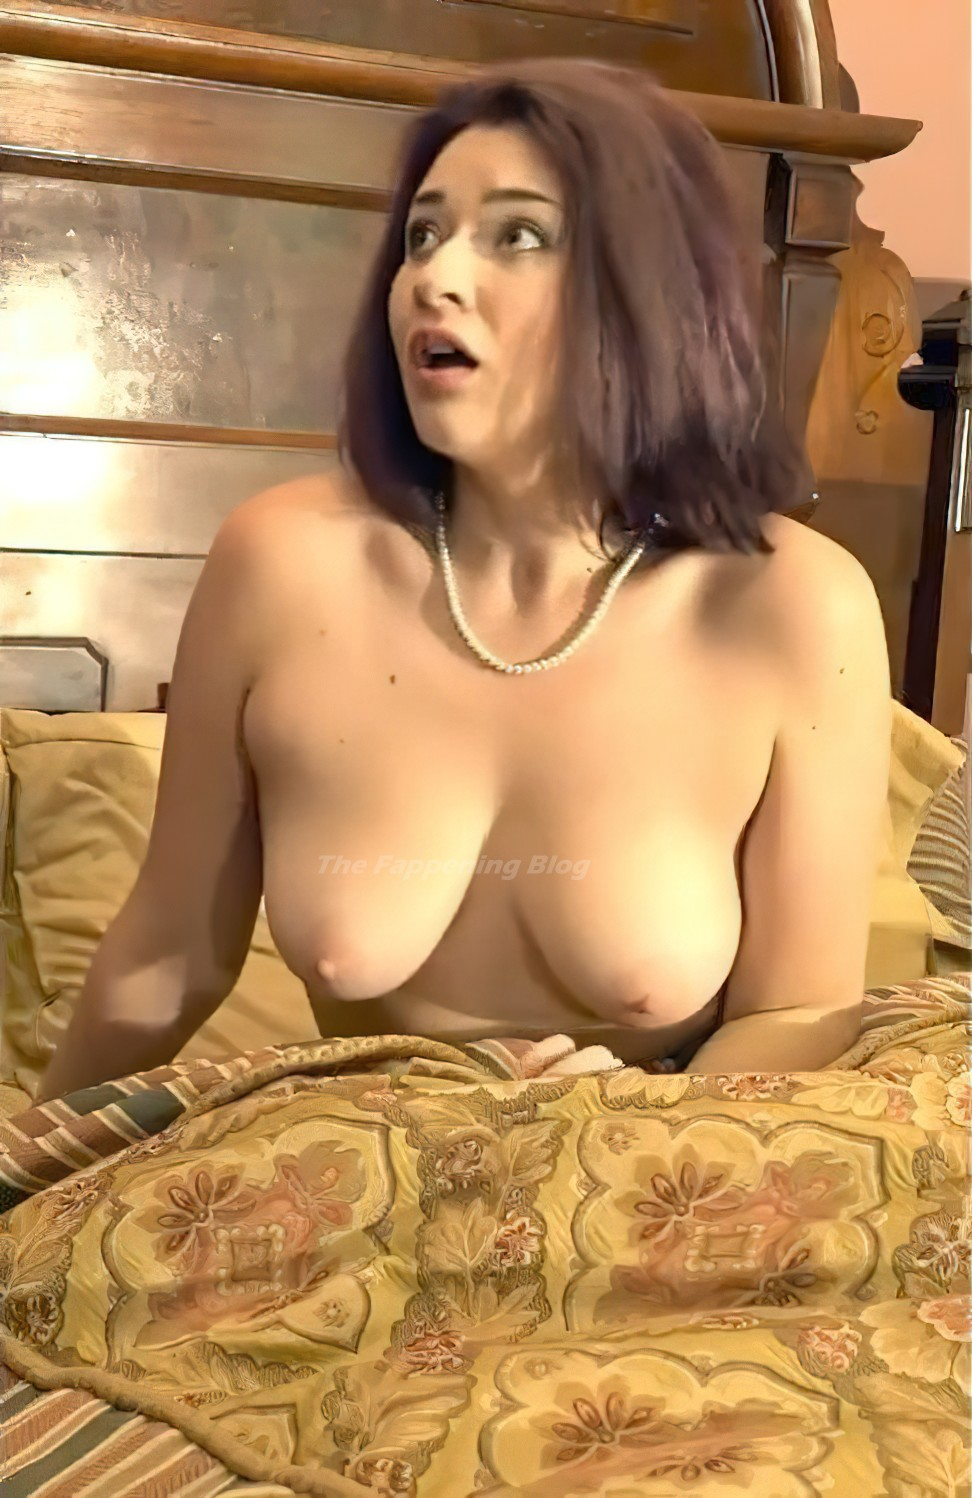 Anastasia August Nude Full Frontal – Chills Down Your Spine (9 Pics + Video)